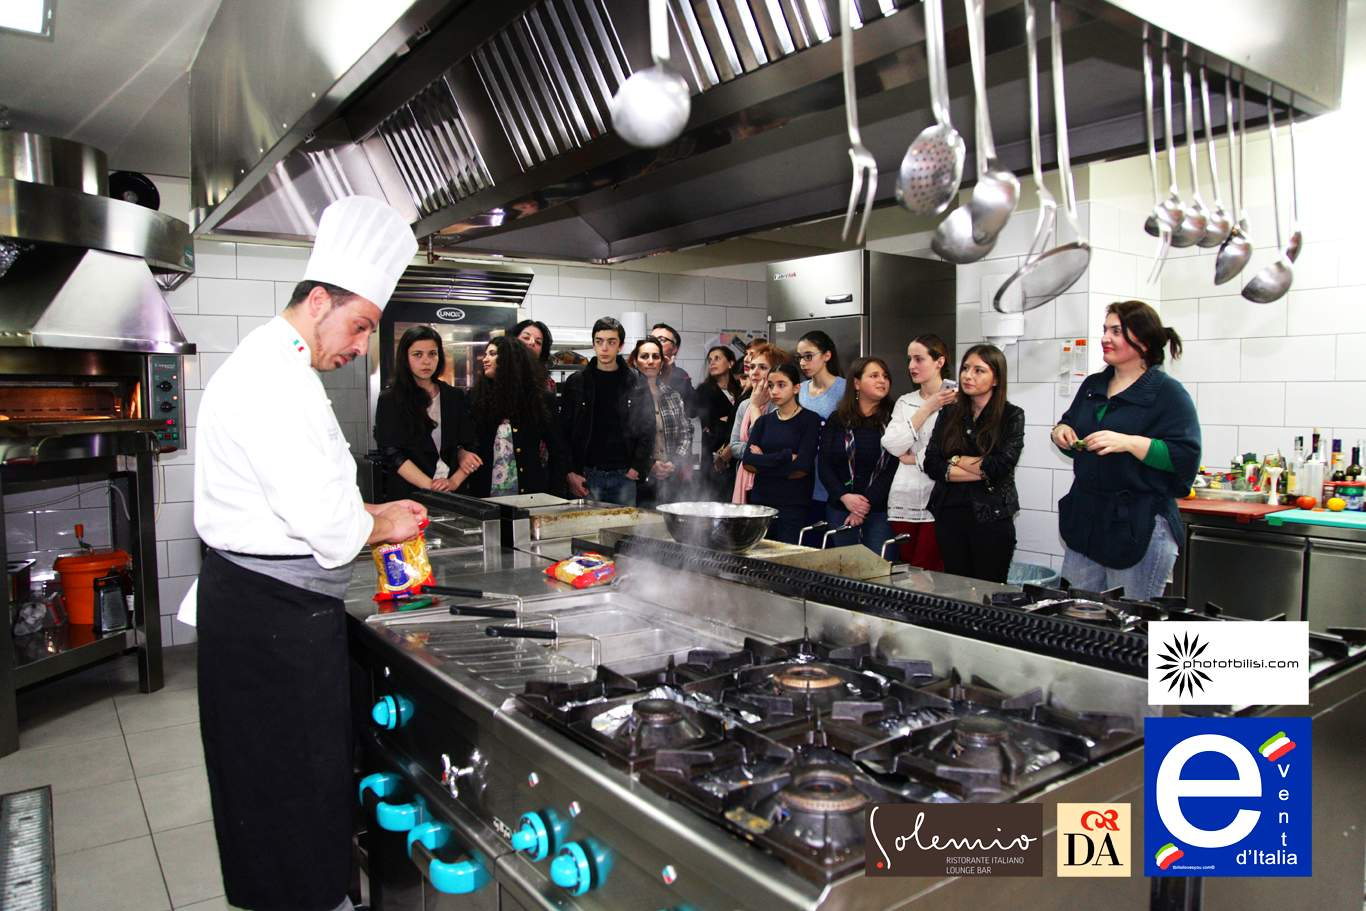 solemio-dantetbilisi-italian-language-lesson-cookingIMG_6843-ps-cp-1366